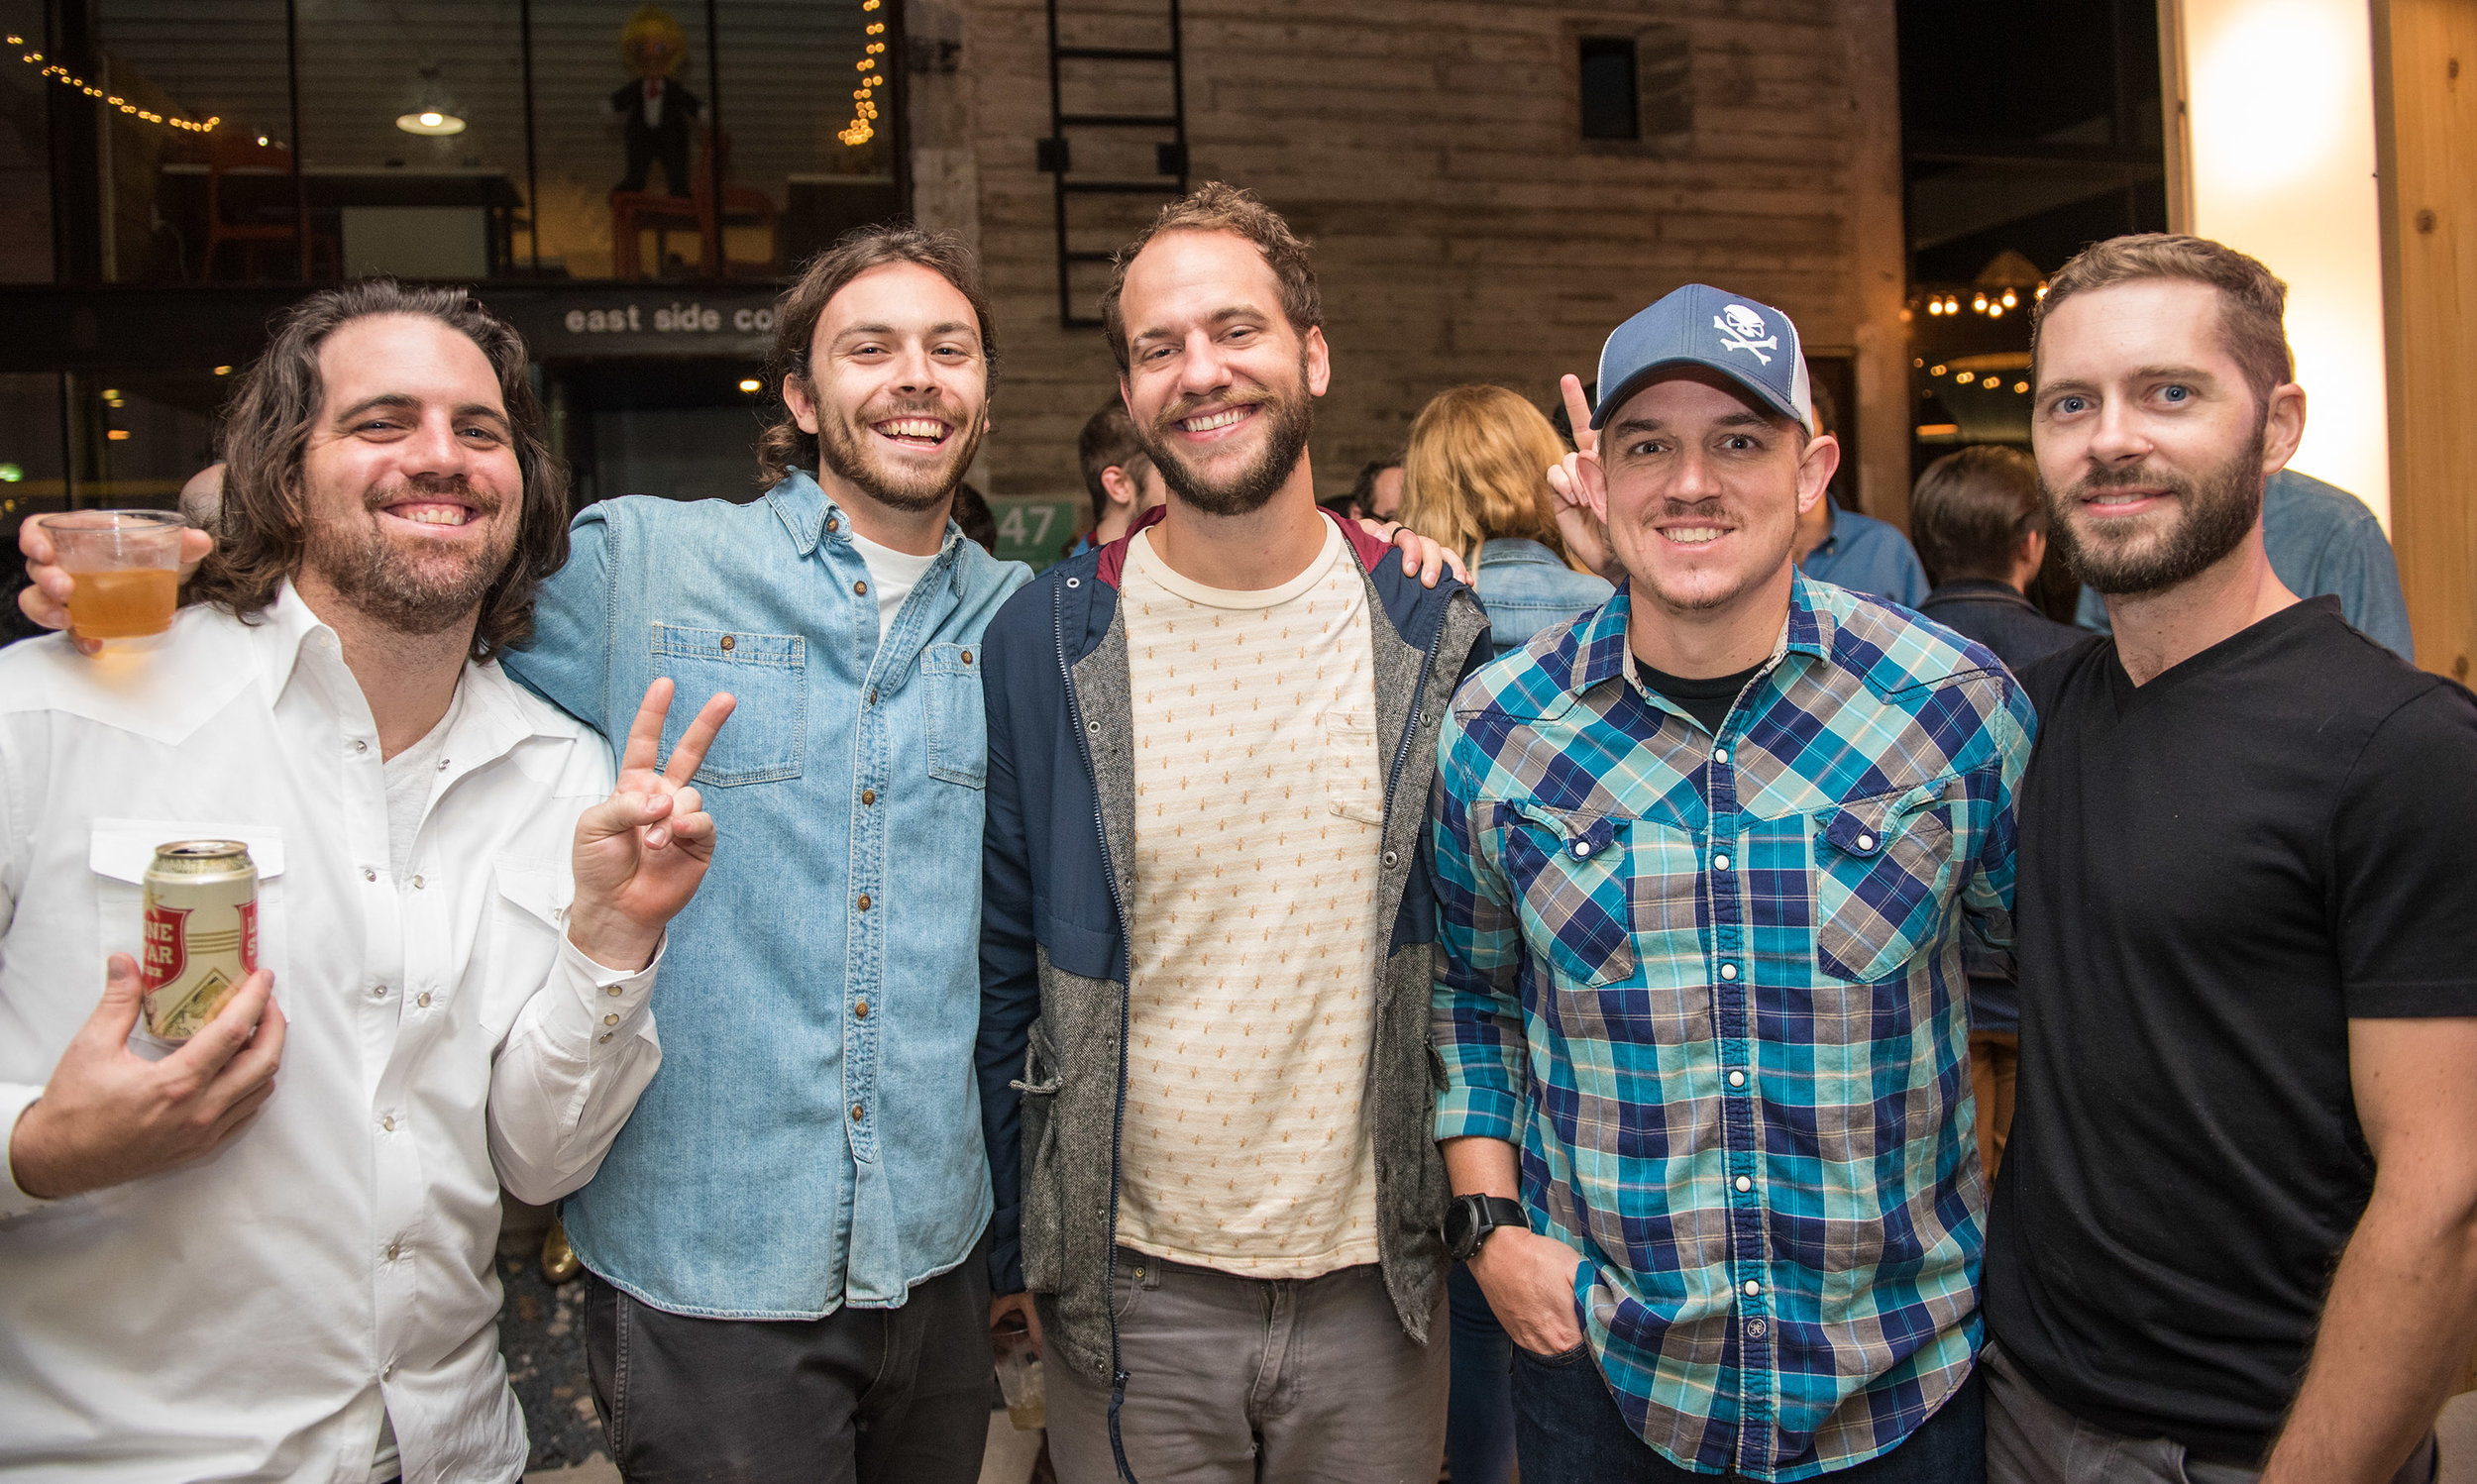 dbh-EASTopeningparty_EastSideCollective-111116-48.jpg